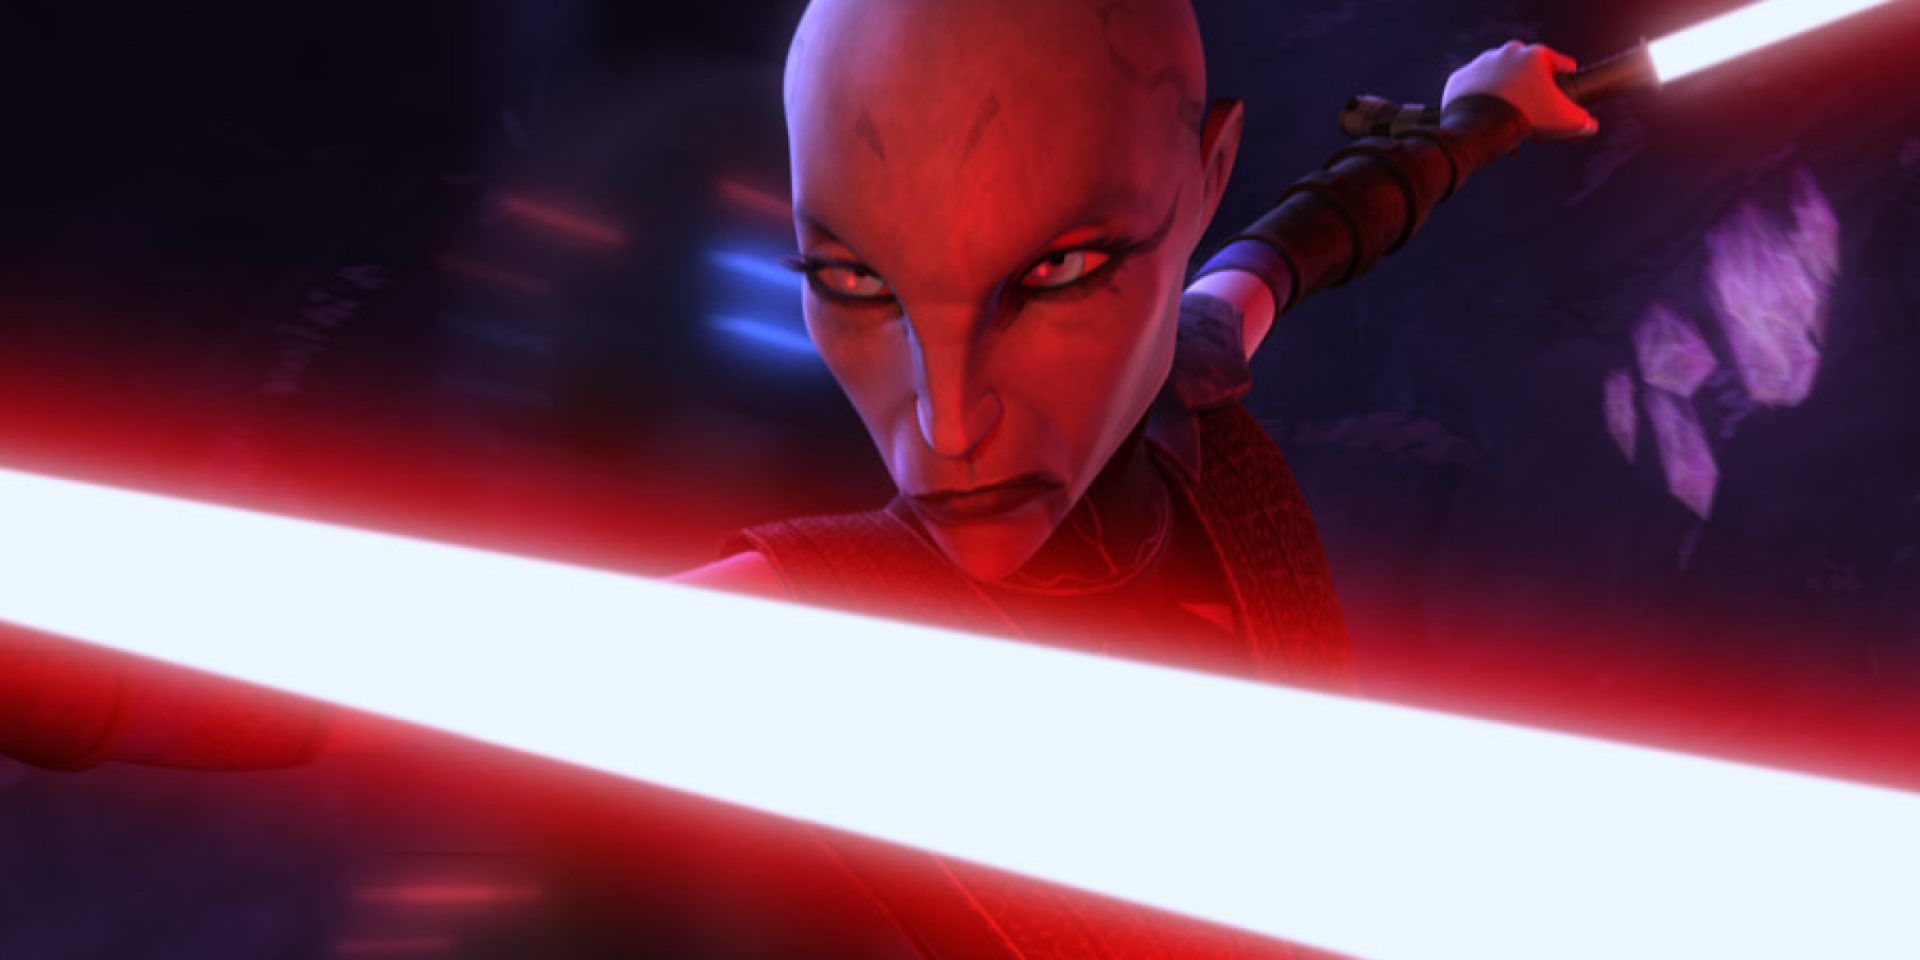 Asajj Ventress looks menacing